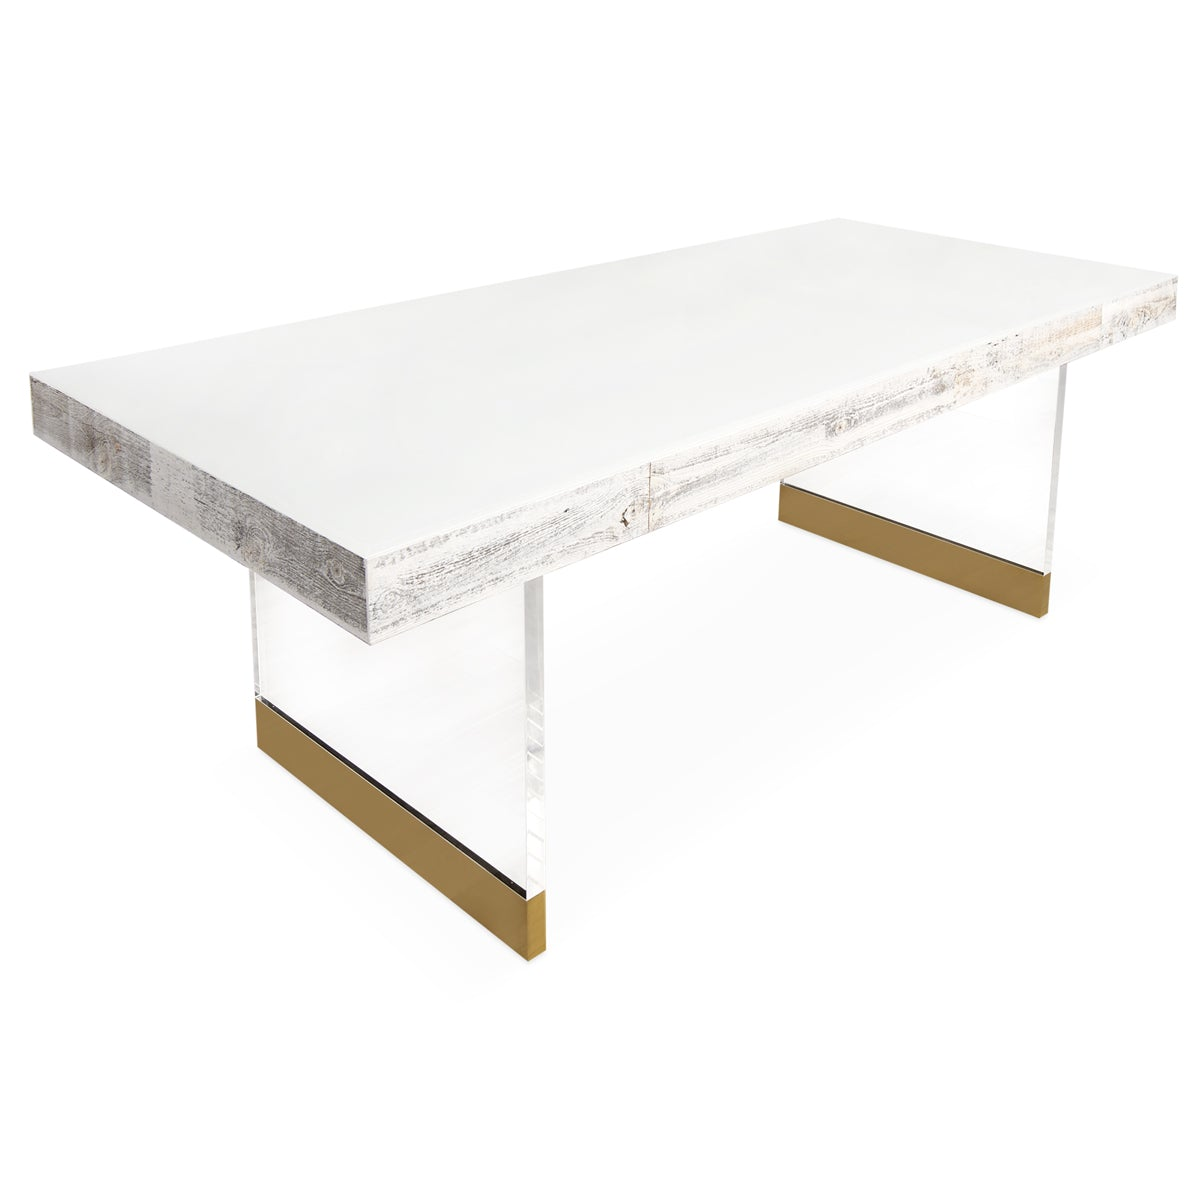 Cody Dining Table in White Recycled Wood - ModShop1.com